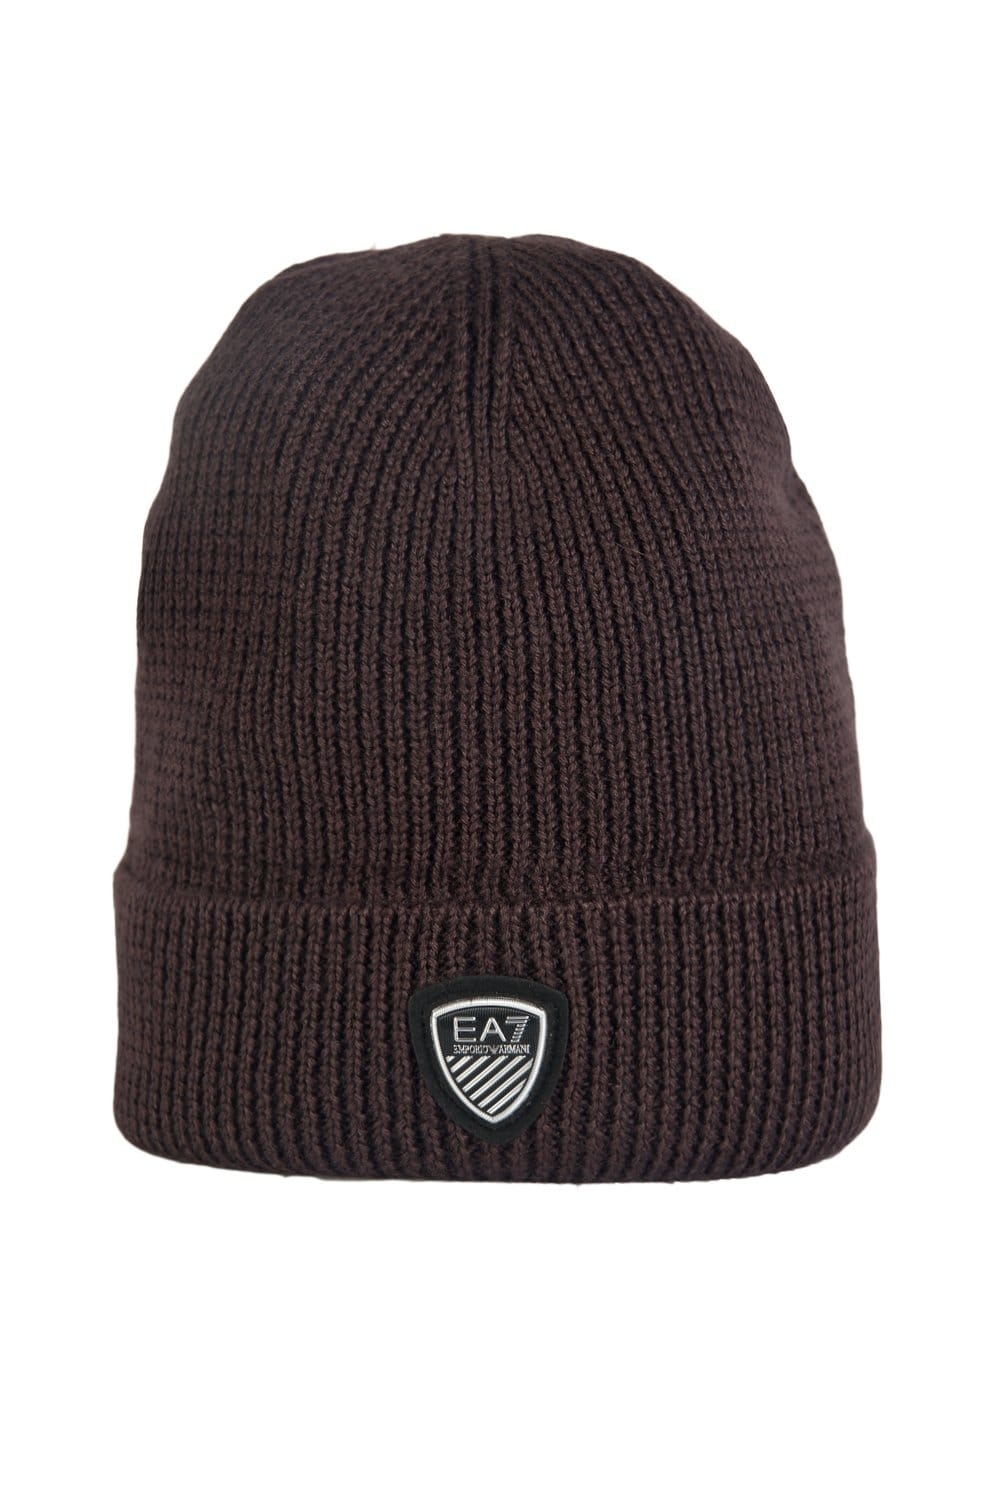 EA7 by Emporio Armani Beanie Hat in Navy Blue Grey and Brown 2755164A394 6690058cd85